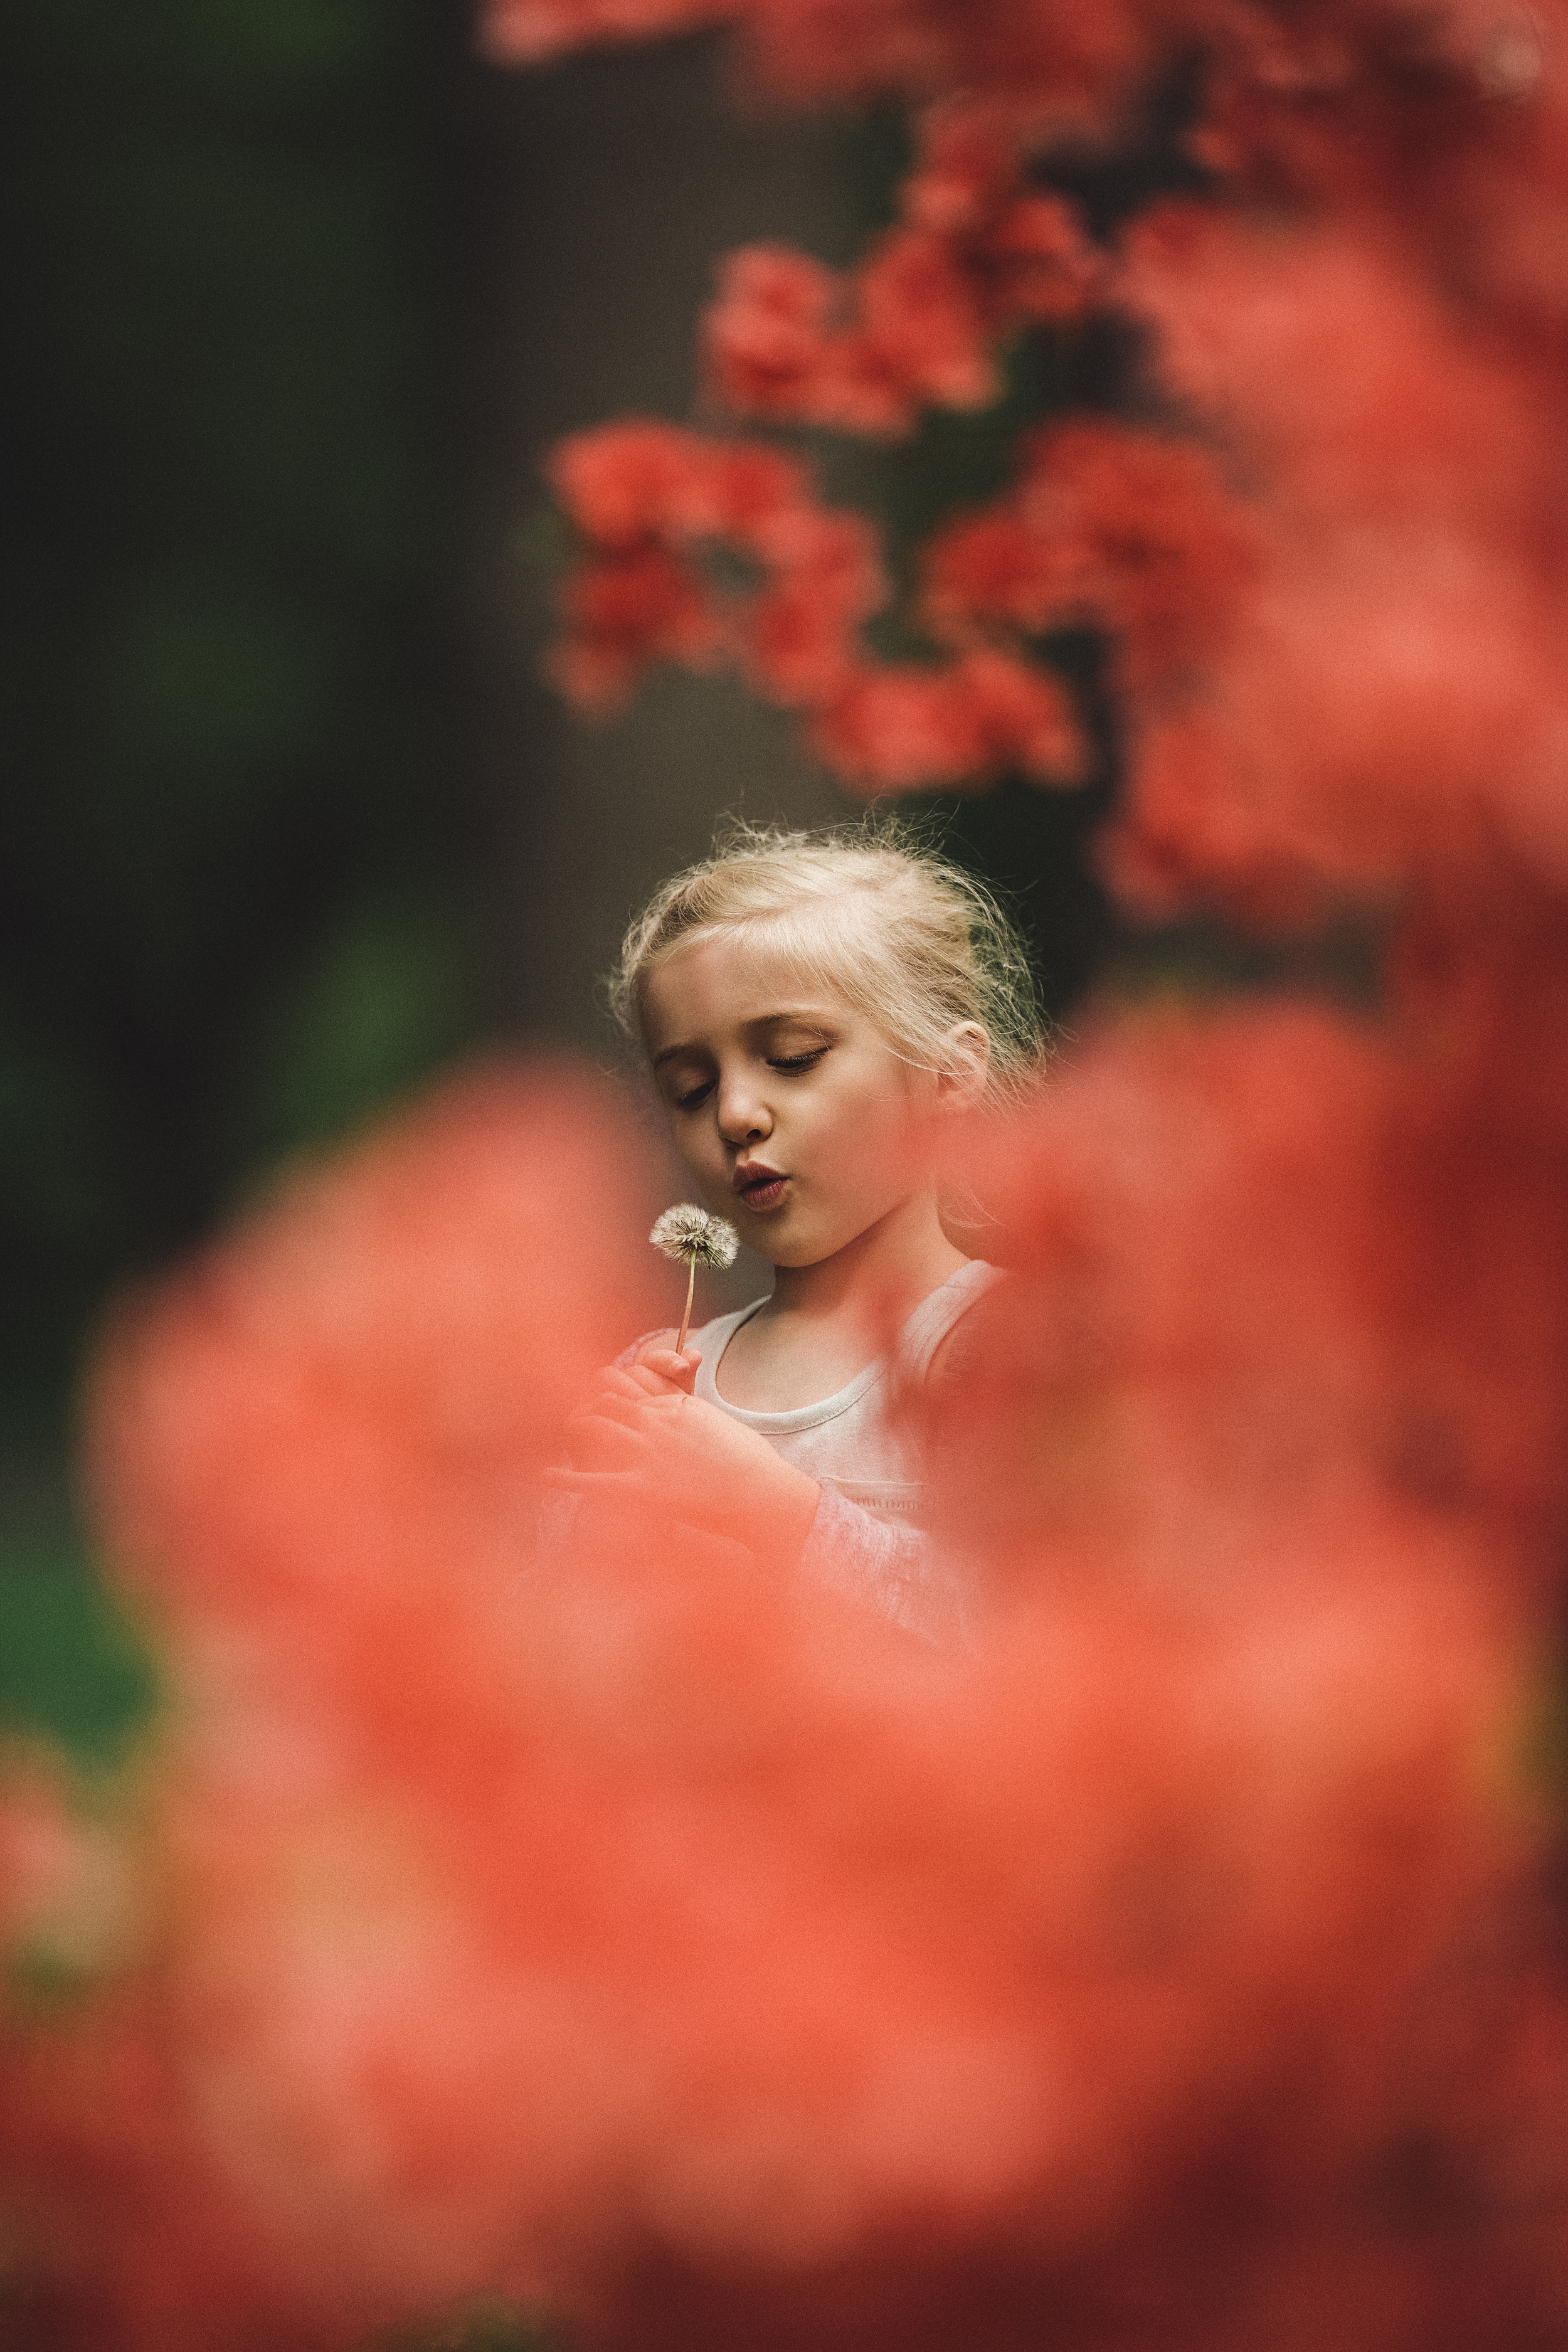 Hello-olivia-photography-long-island-family-children-childrens-lifestyle-photographer-planting-fields-oyster-bay-flowers-pink